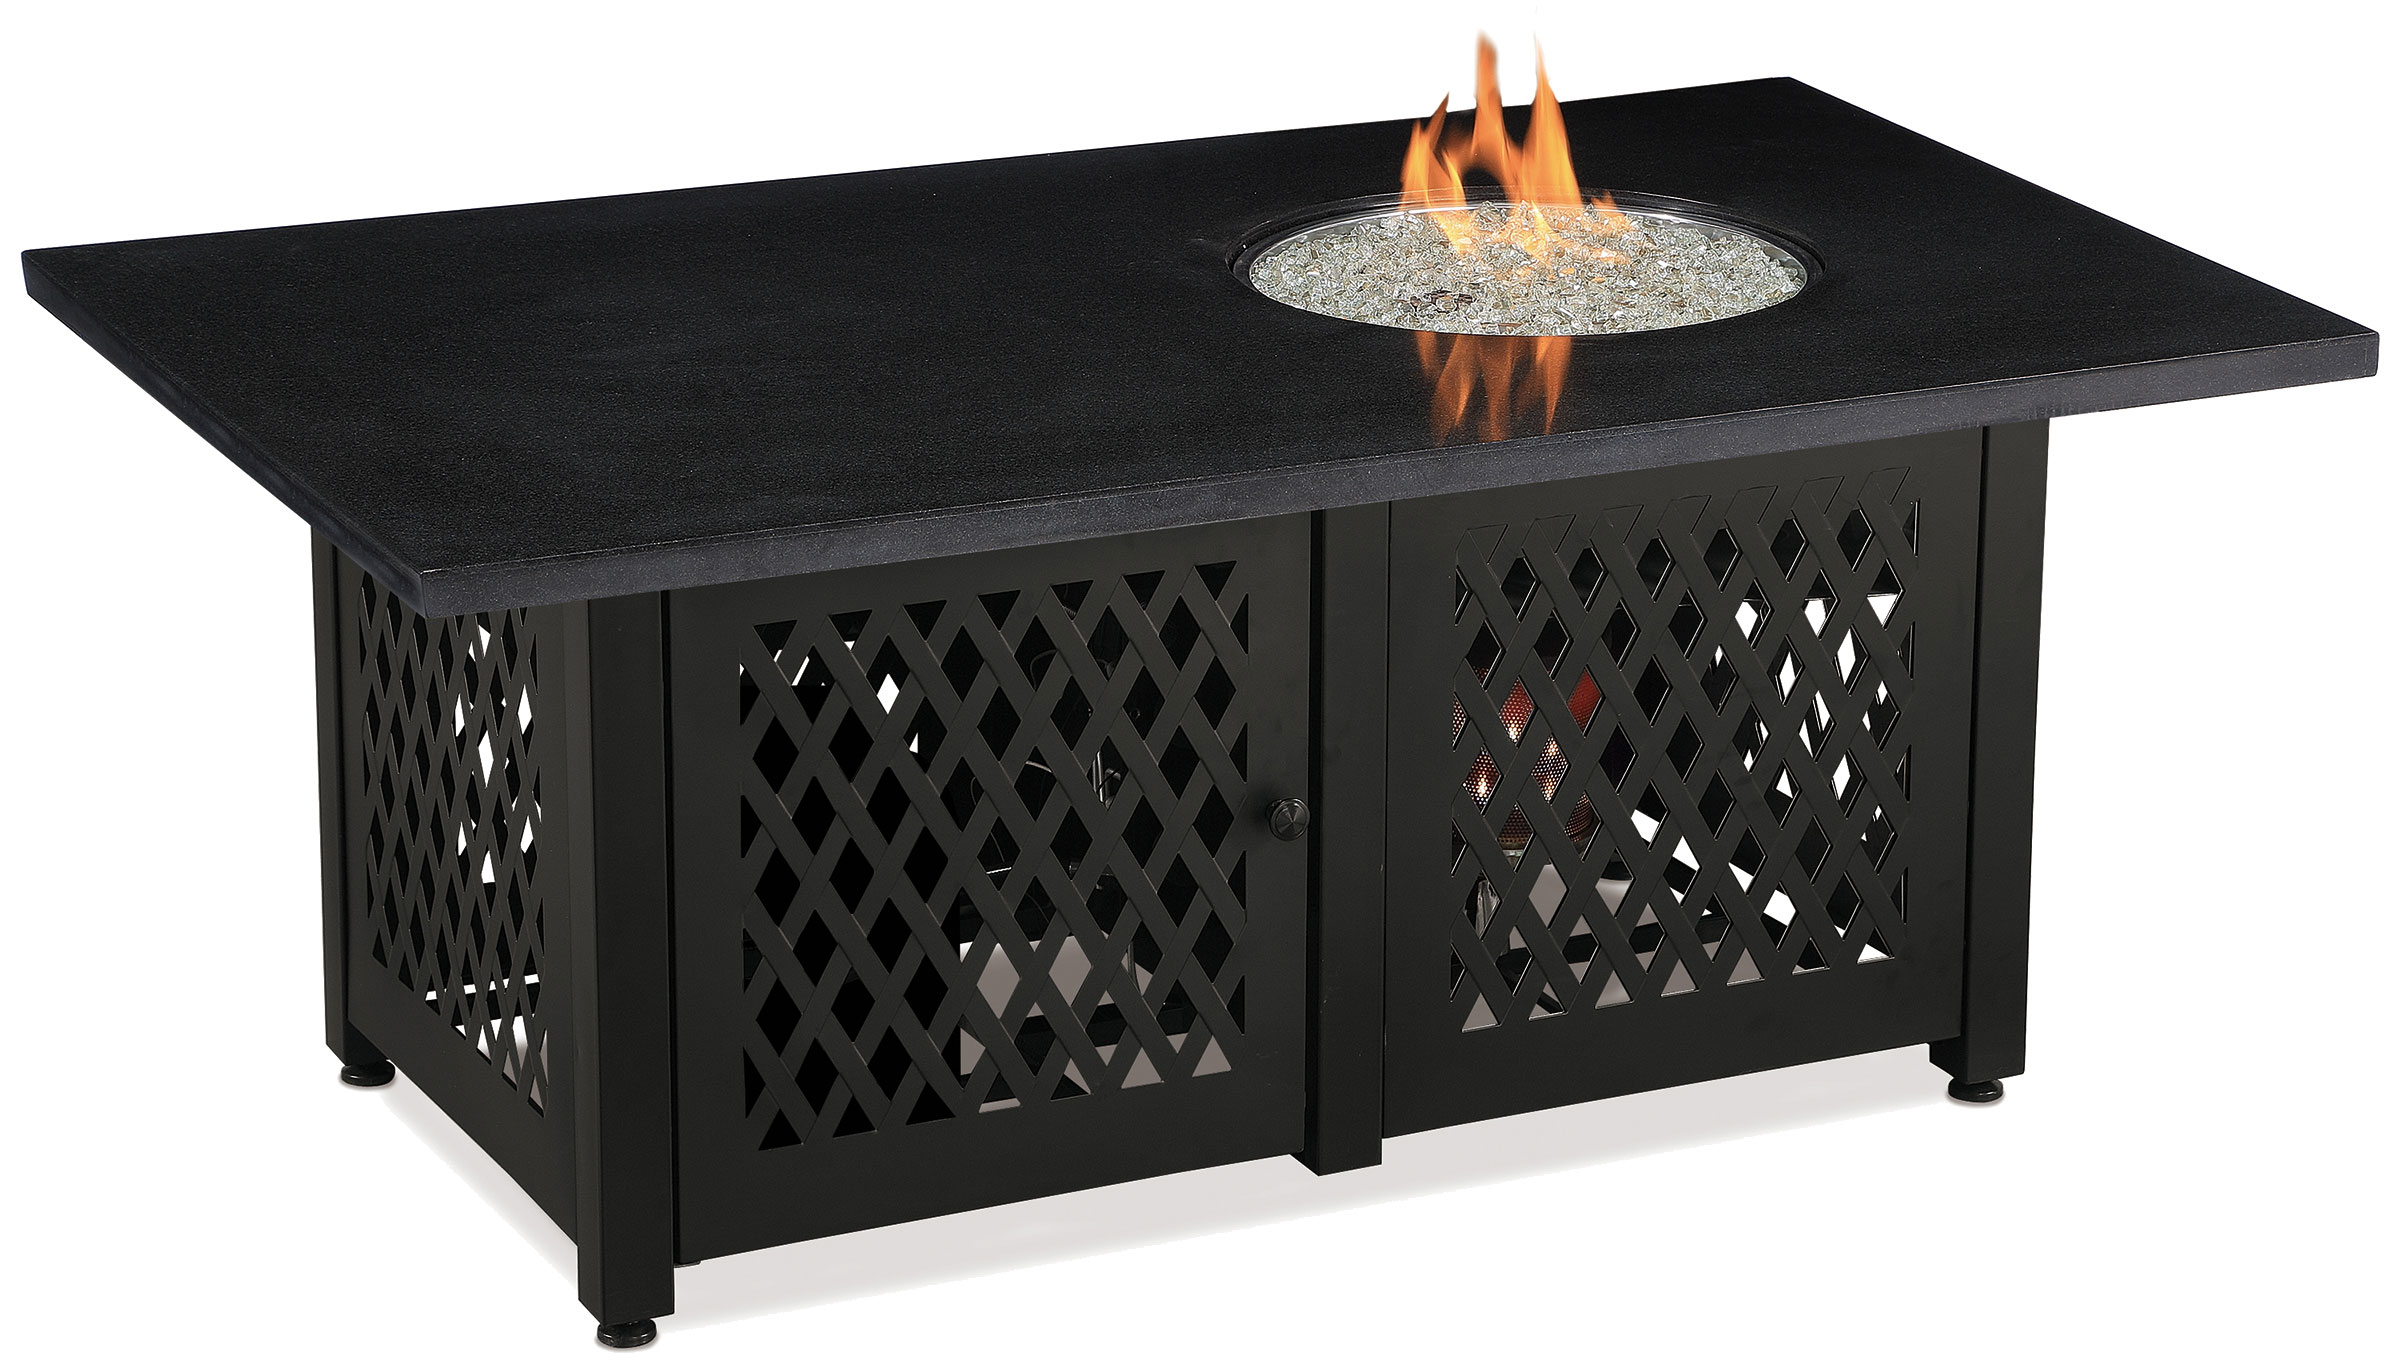 Chef Master GAD18100M fire pit, outdoor